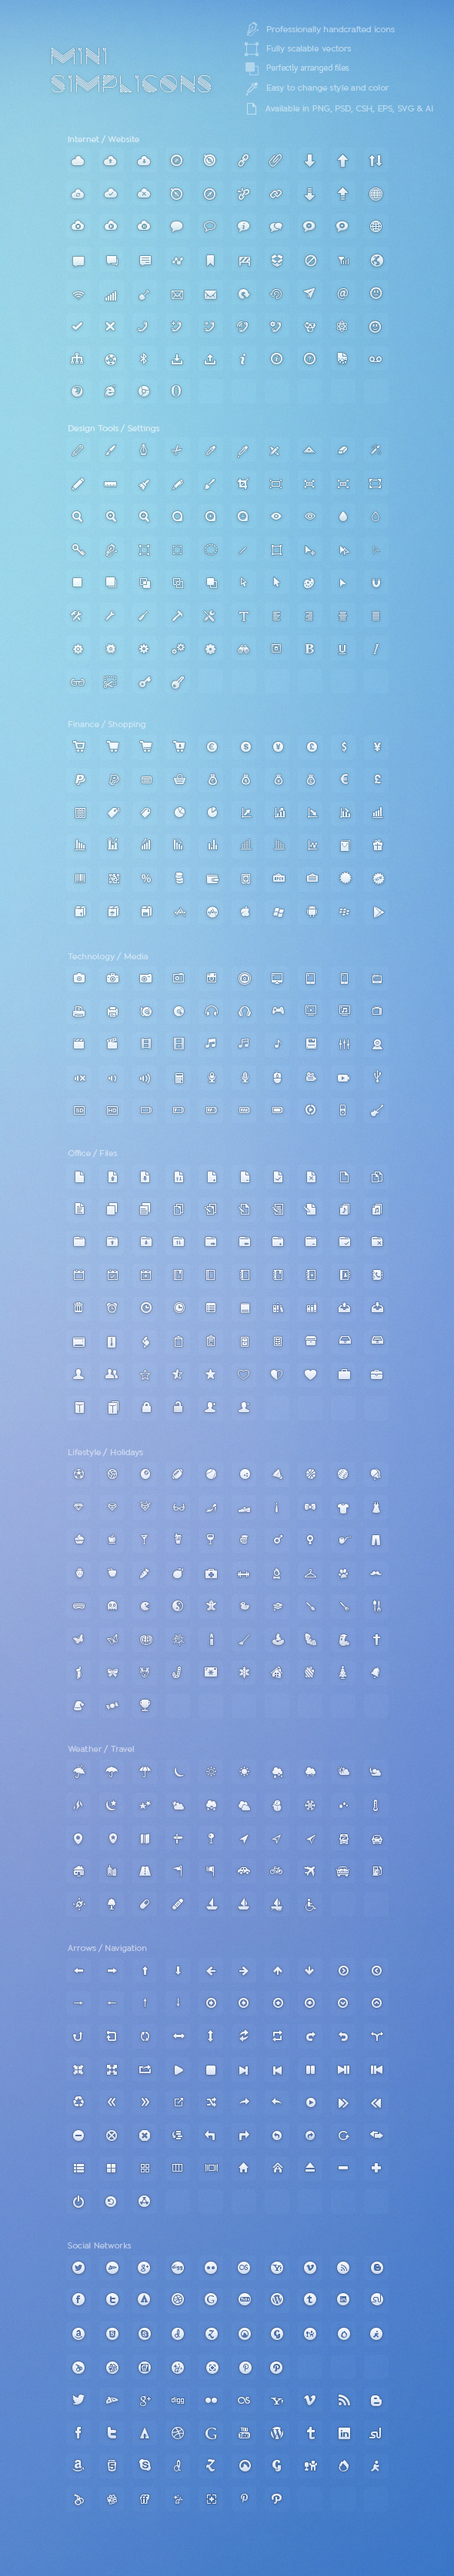 600+Mini Simplicons Icon Set by okidoci